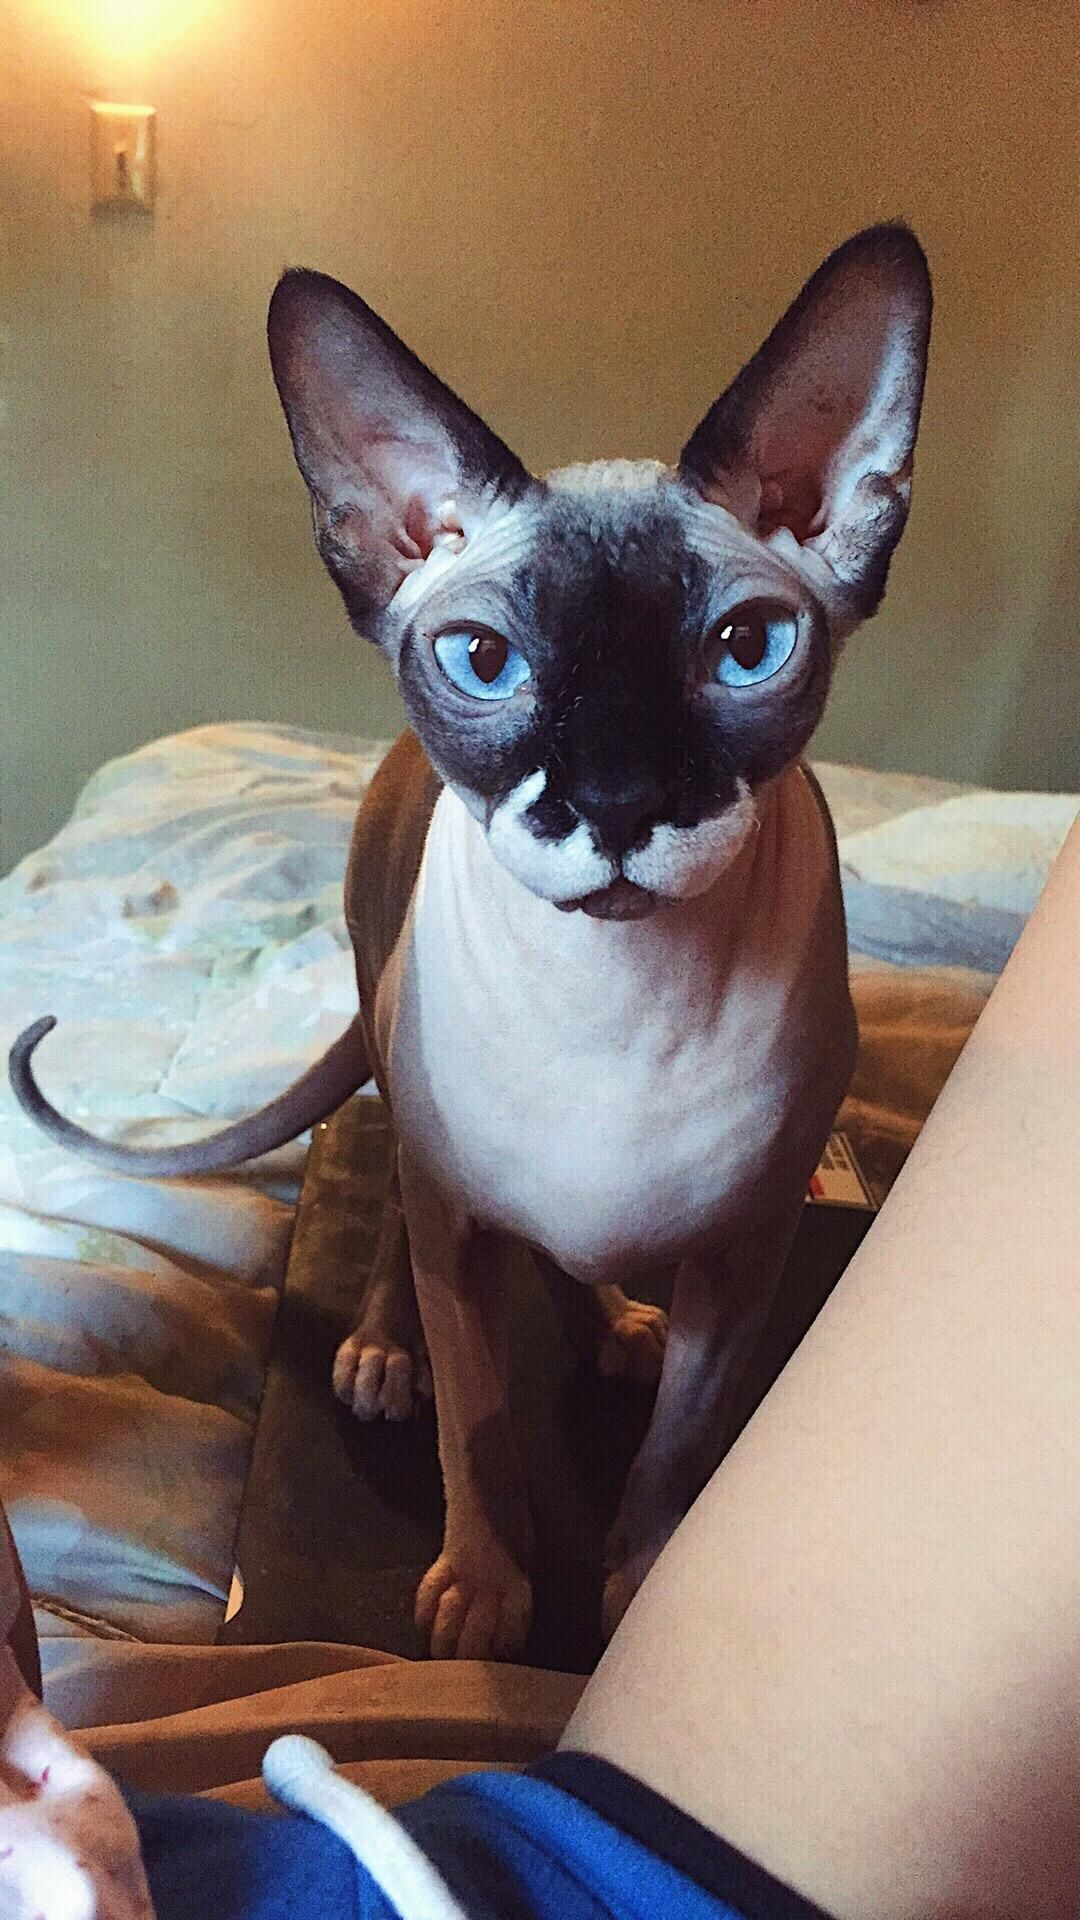 Meet Jiggly Puff My Sphynx Cat Previous Owners Named Her Bc She Was Born Pink Cute Hairless Cat Cat Photography Pretty Cats